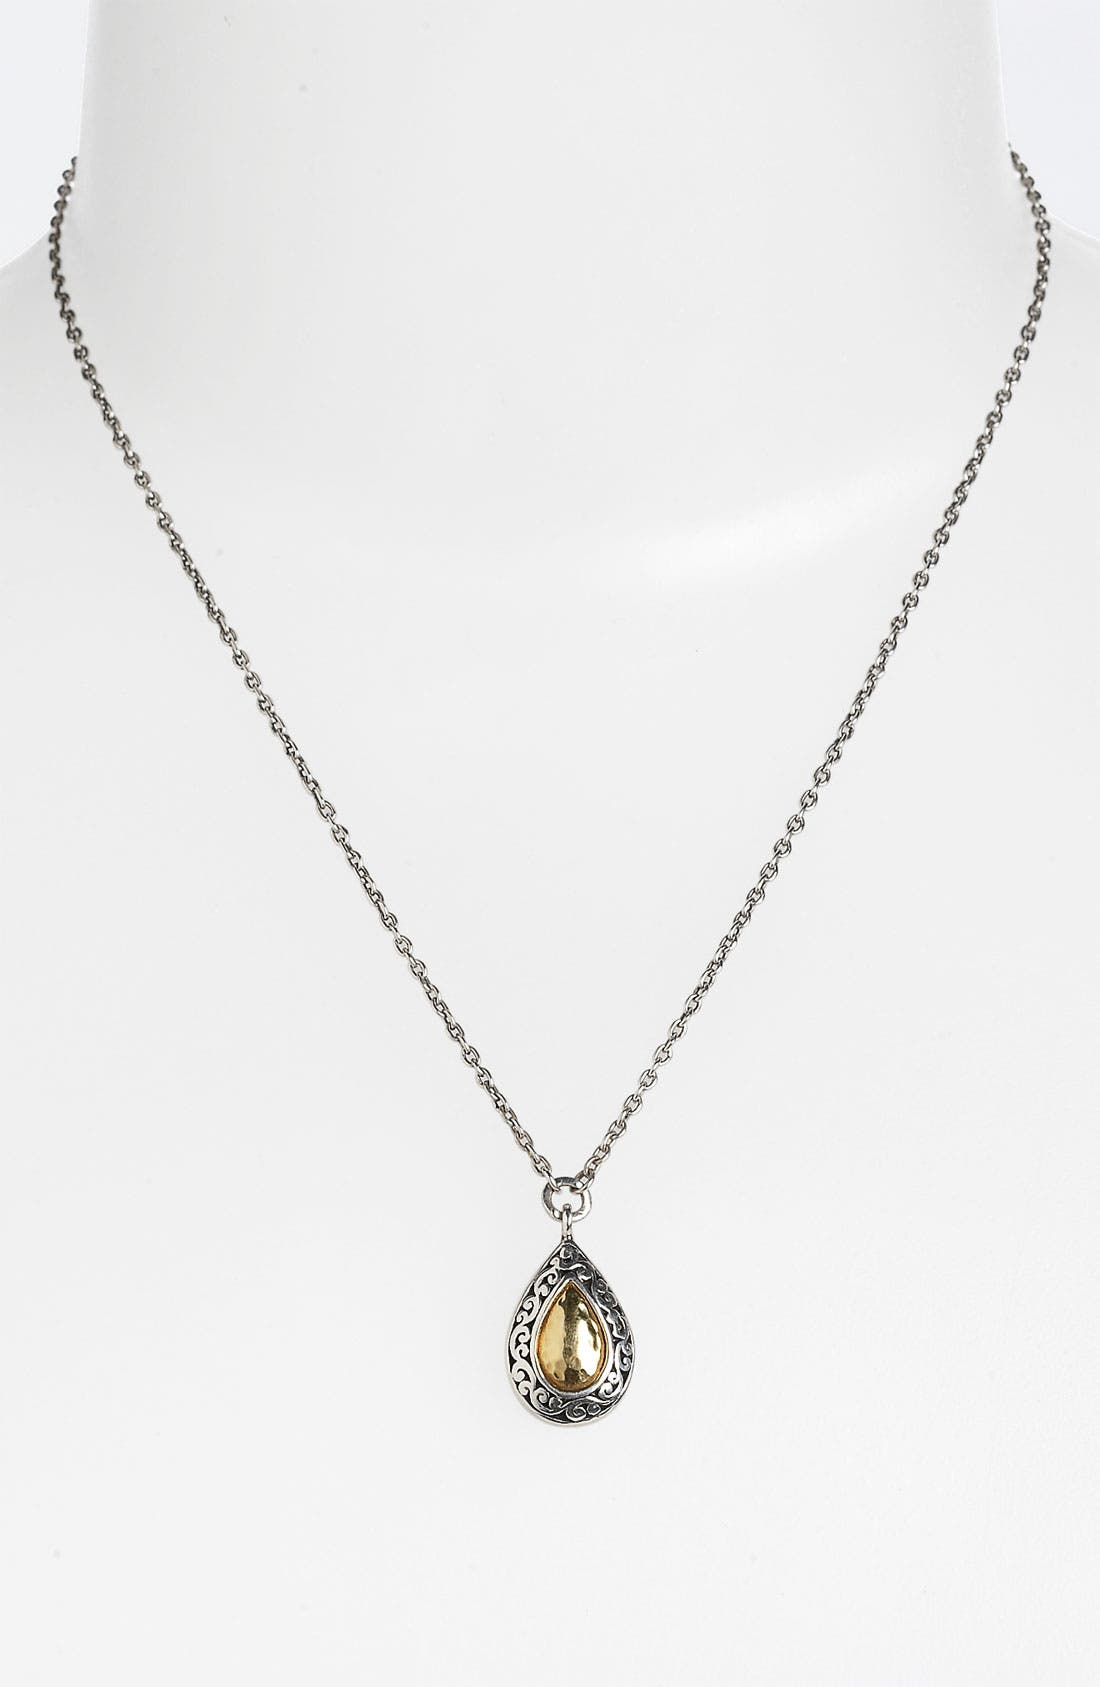 Alternate Image 1 Selected - Lois Hill 'Marquise' Small Teardrop Pendant Necklace